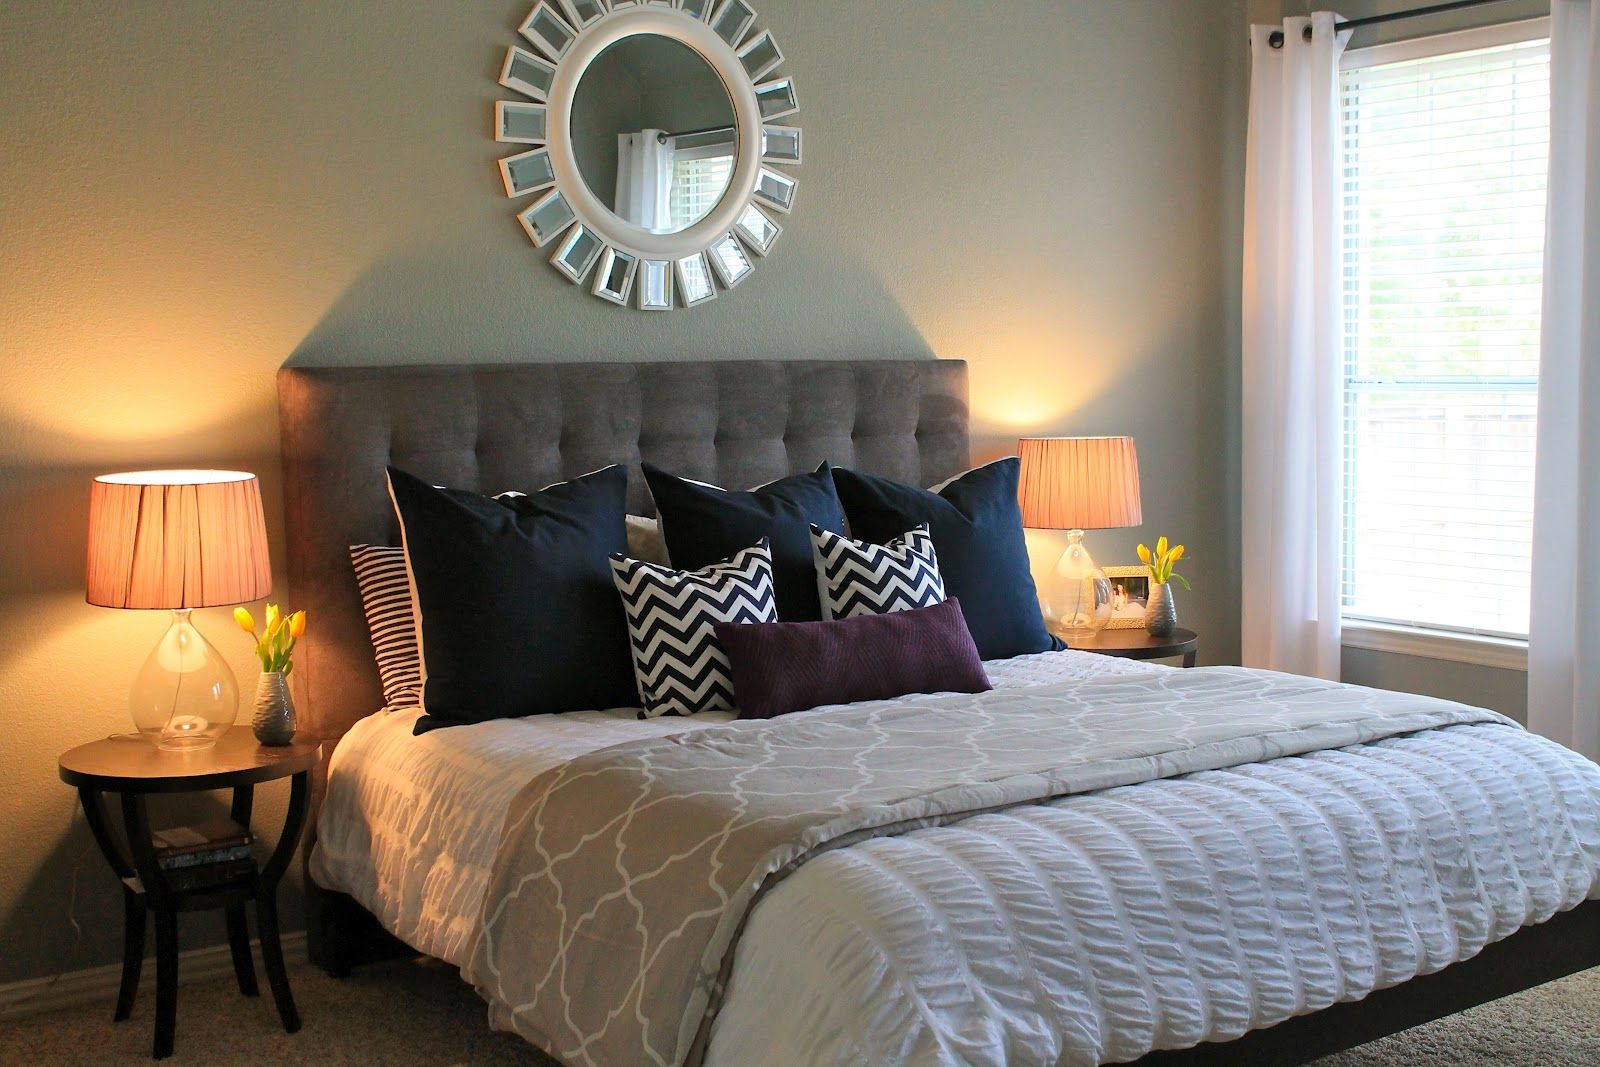 Room Decorating Before and After Makeovers | Bedroom makeovers, Diy ...